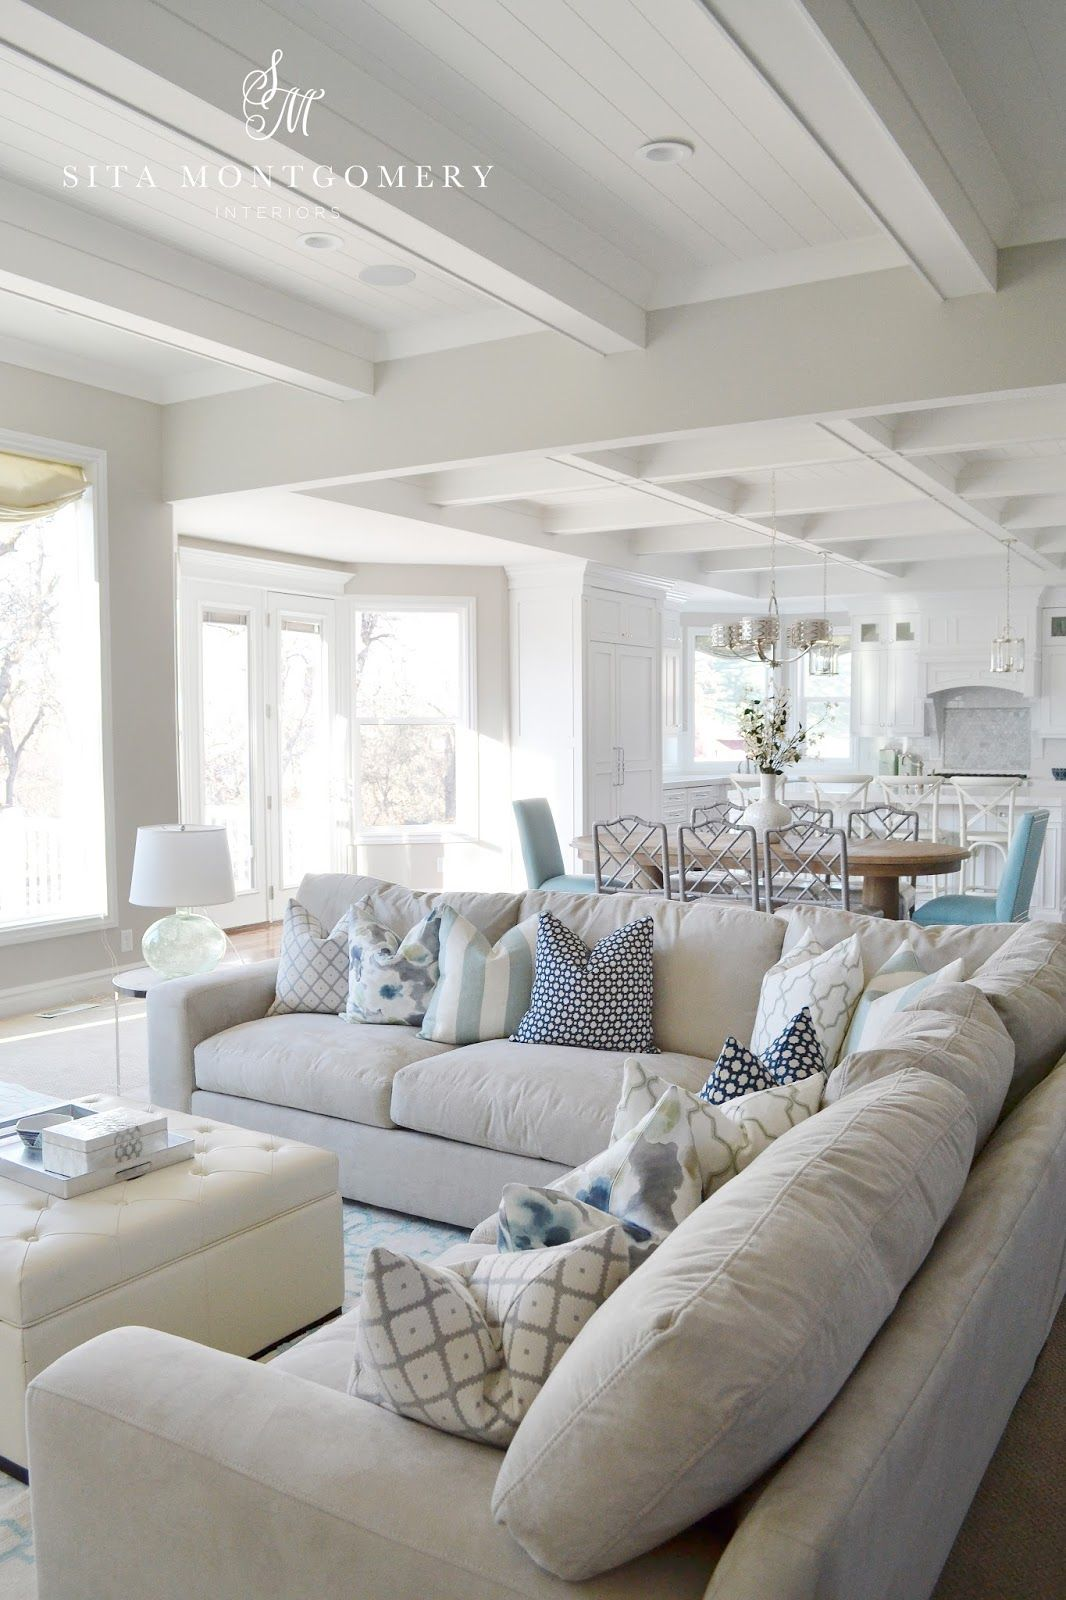 Sita Montgomery Interiors: A Gorgeous Living, Dining And Kitchen Space In Light